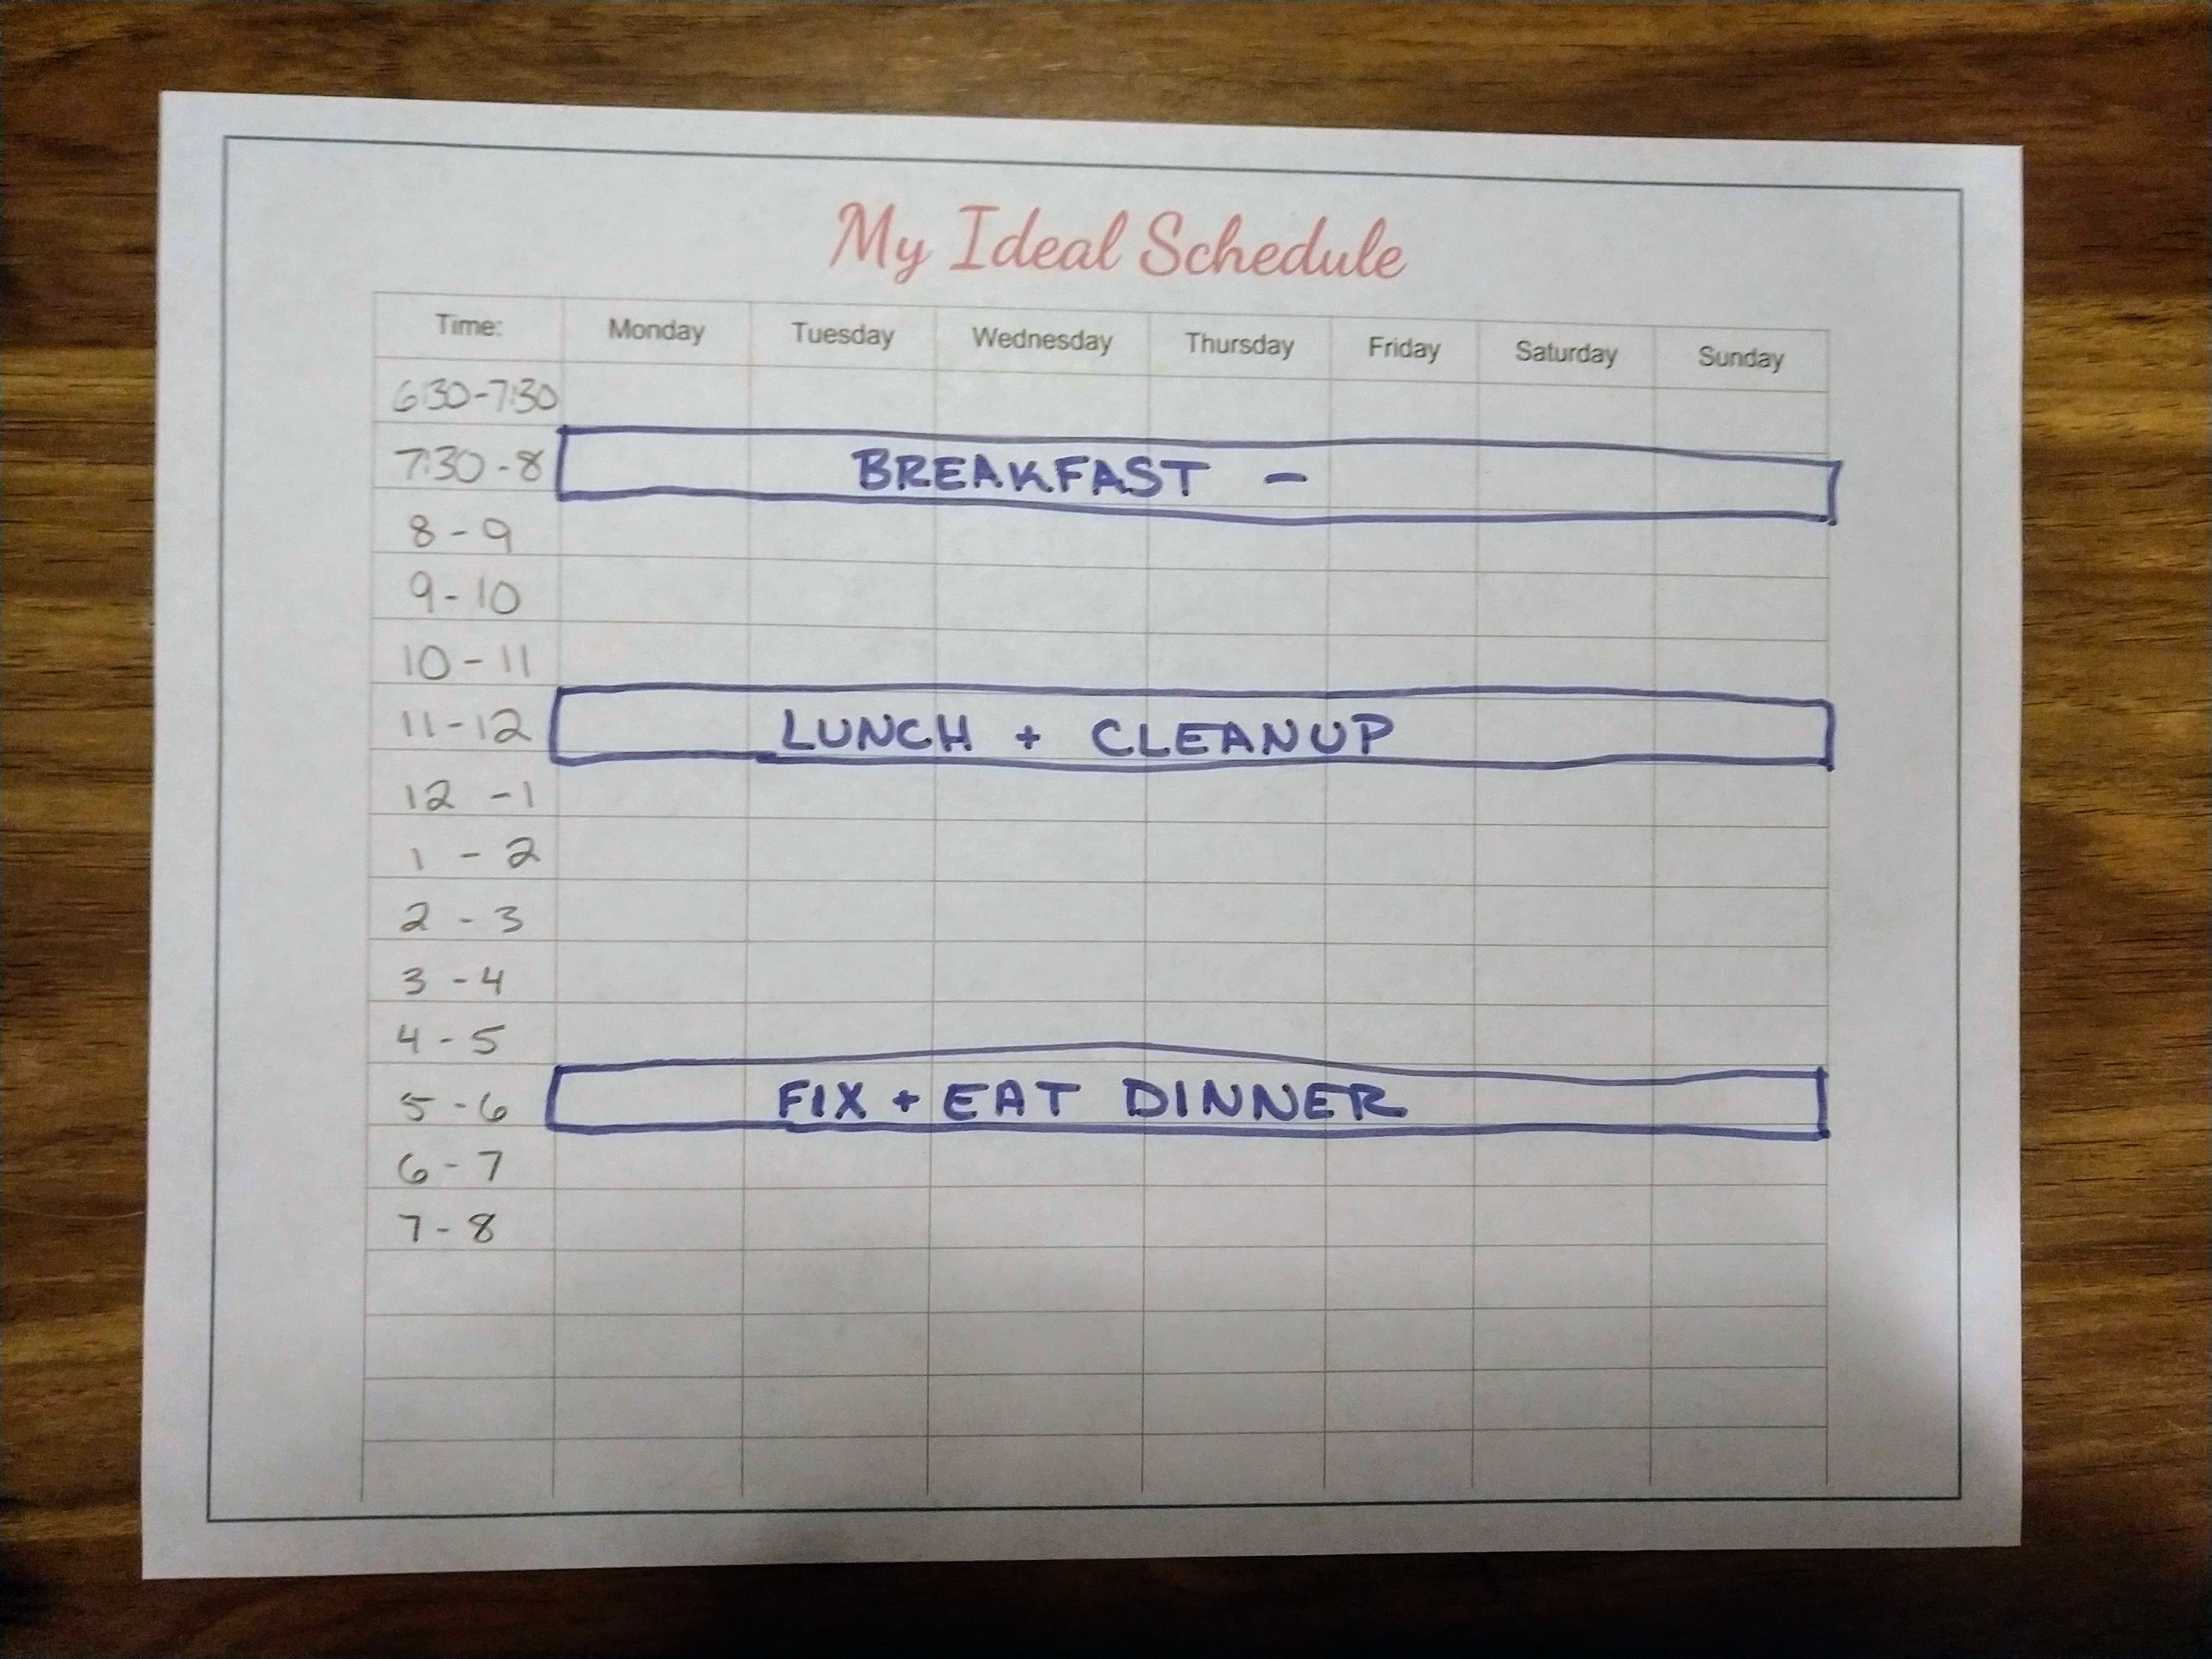 Weekly Schedule Step 1 - Meal Times